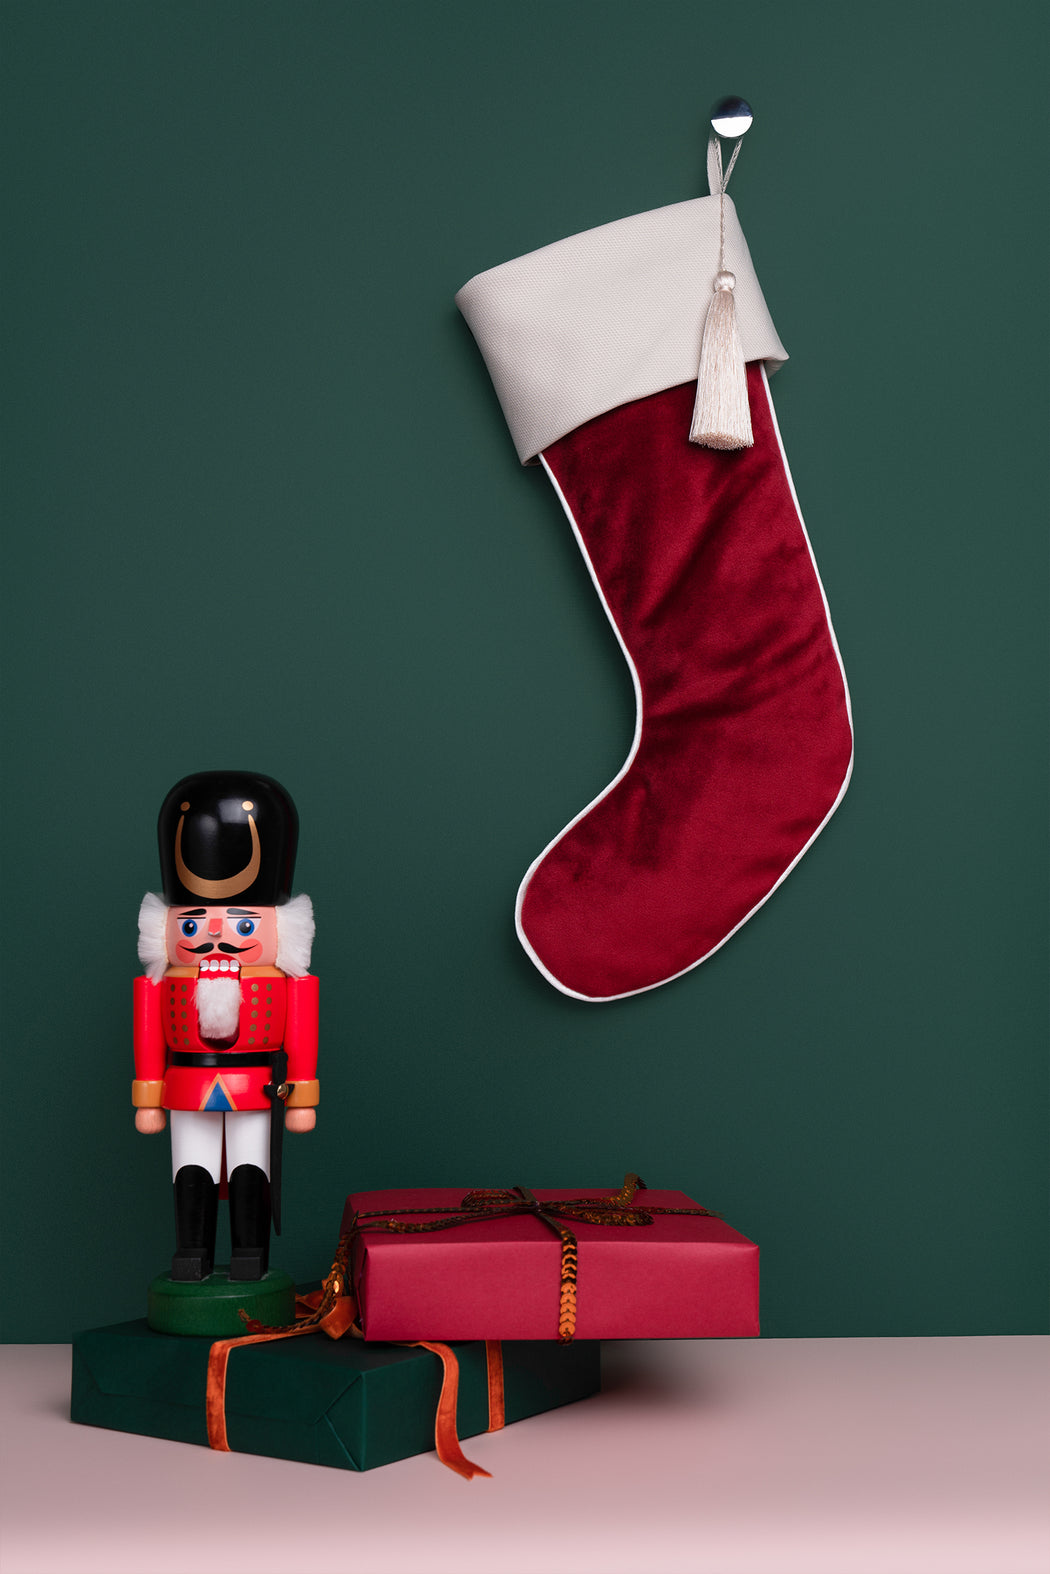 Custom listing for 5 Christmas Stockings with personalization